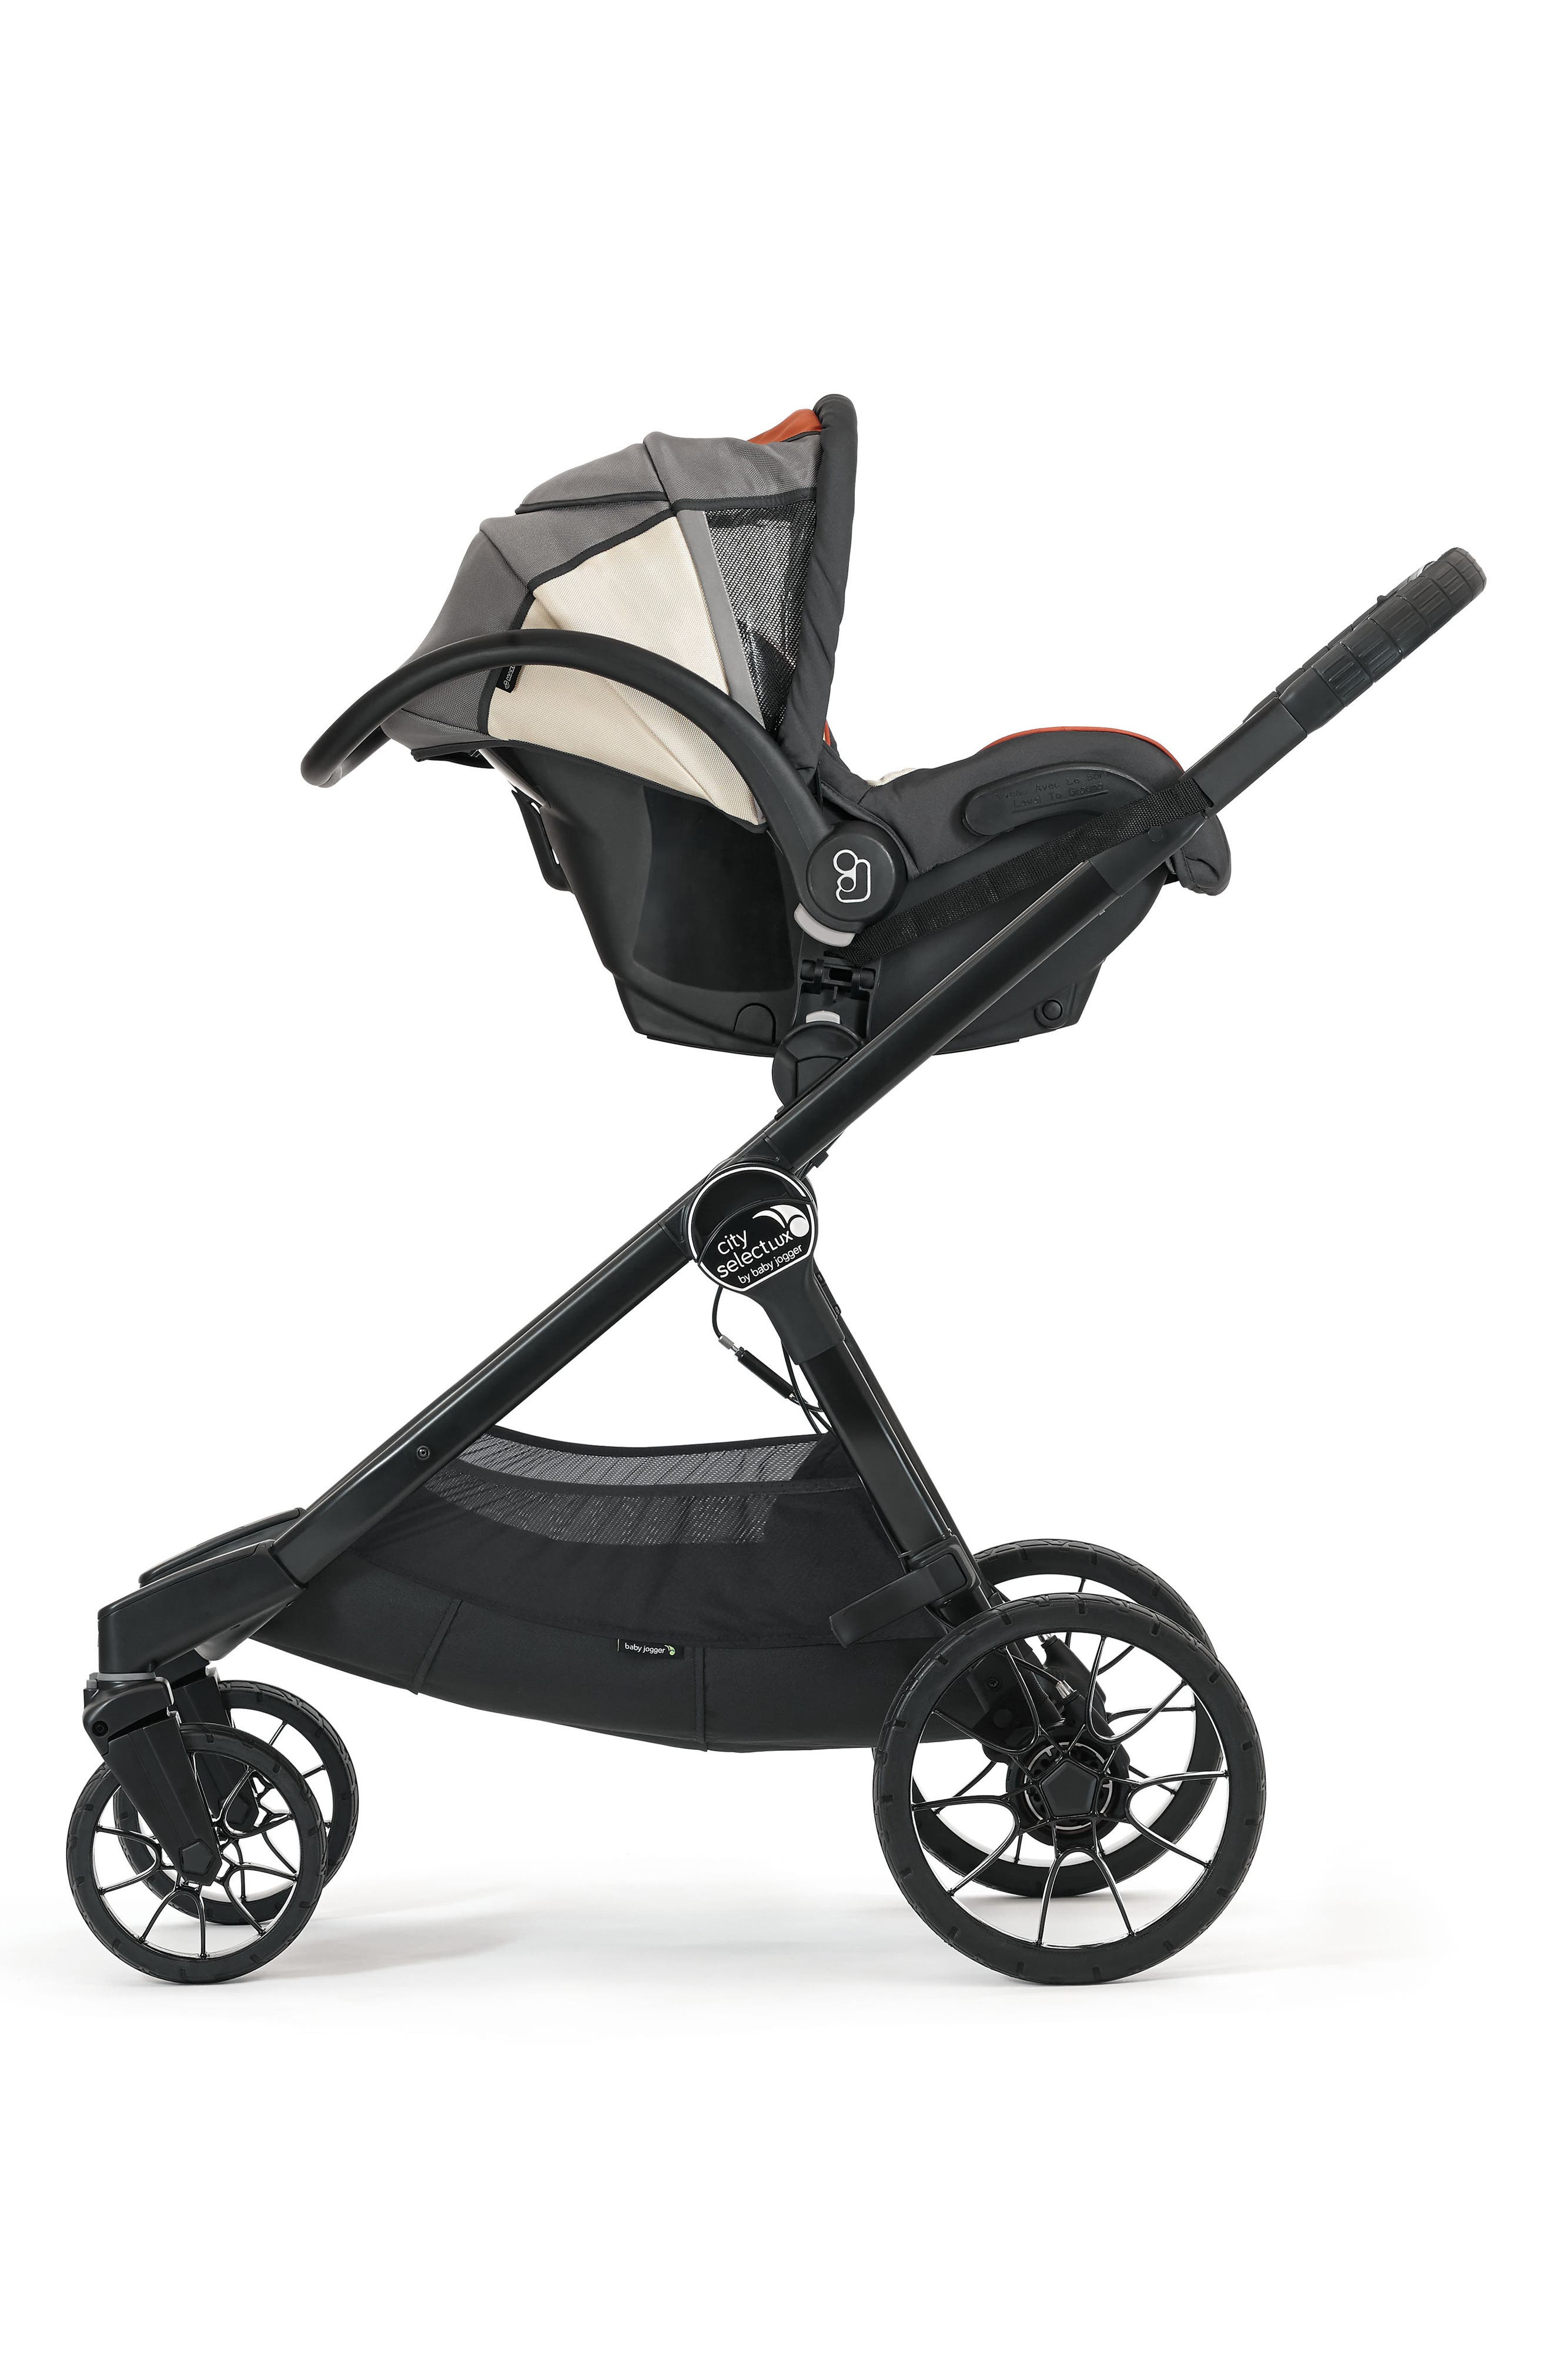 Alternate Image 1 Selected - Baby Jogger City Select®/City Premier® Stroller to Cybex & Maxi-Cosi® Car Seat Adapter